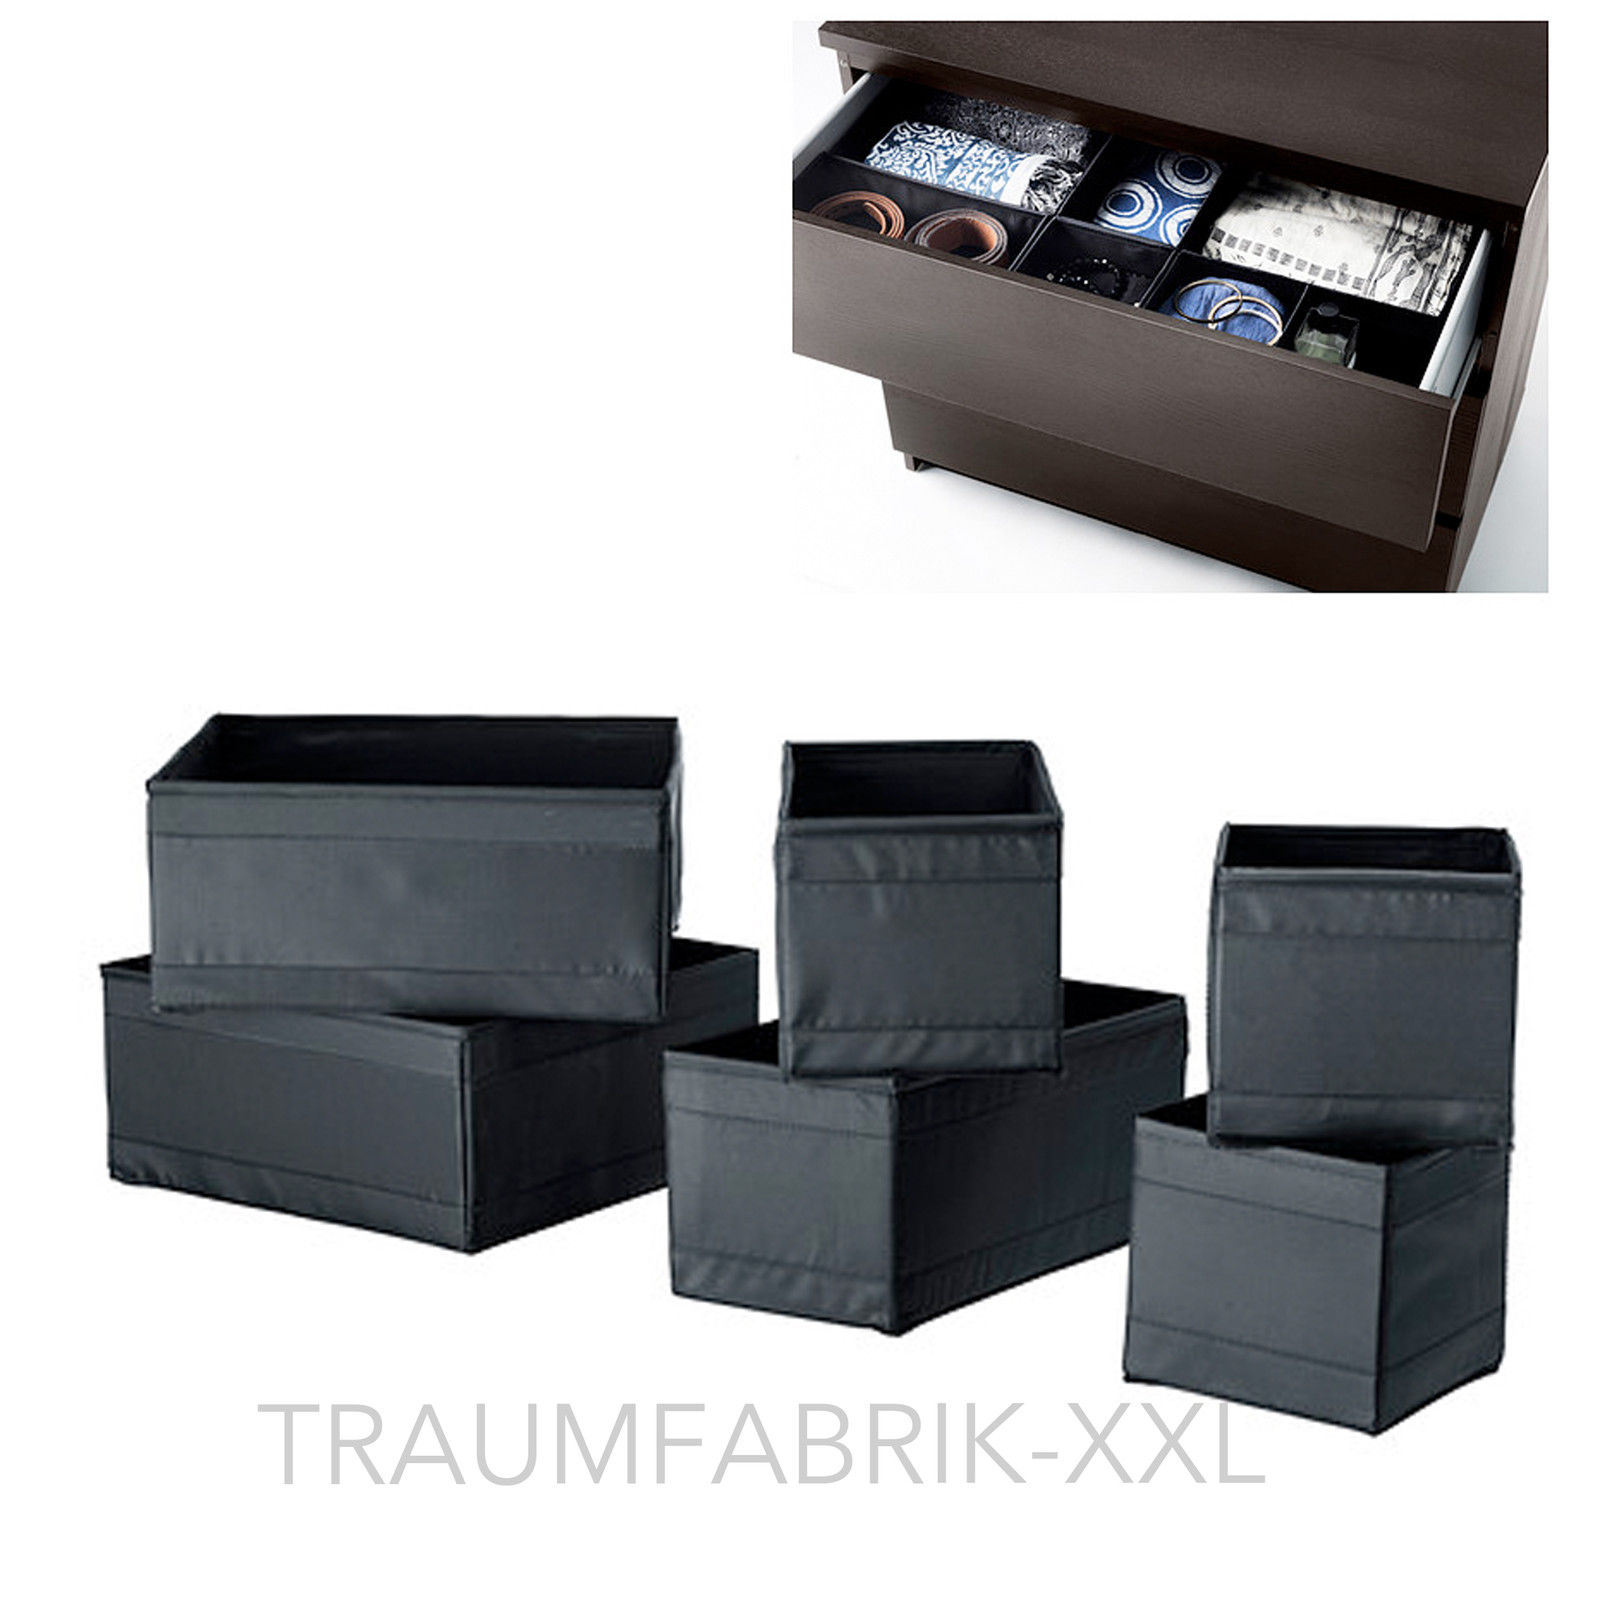 ikea 6er set aufbewahrungsboxen skubb regaleins tze je 2x in 3 gr en schwarz traumfabrik xxl. Black Bedroom Furniture Sets. Home Design Ideas